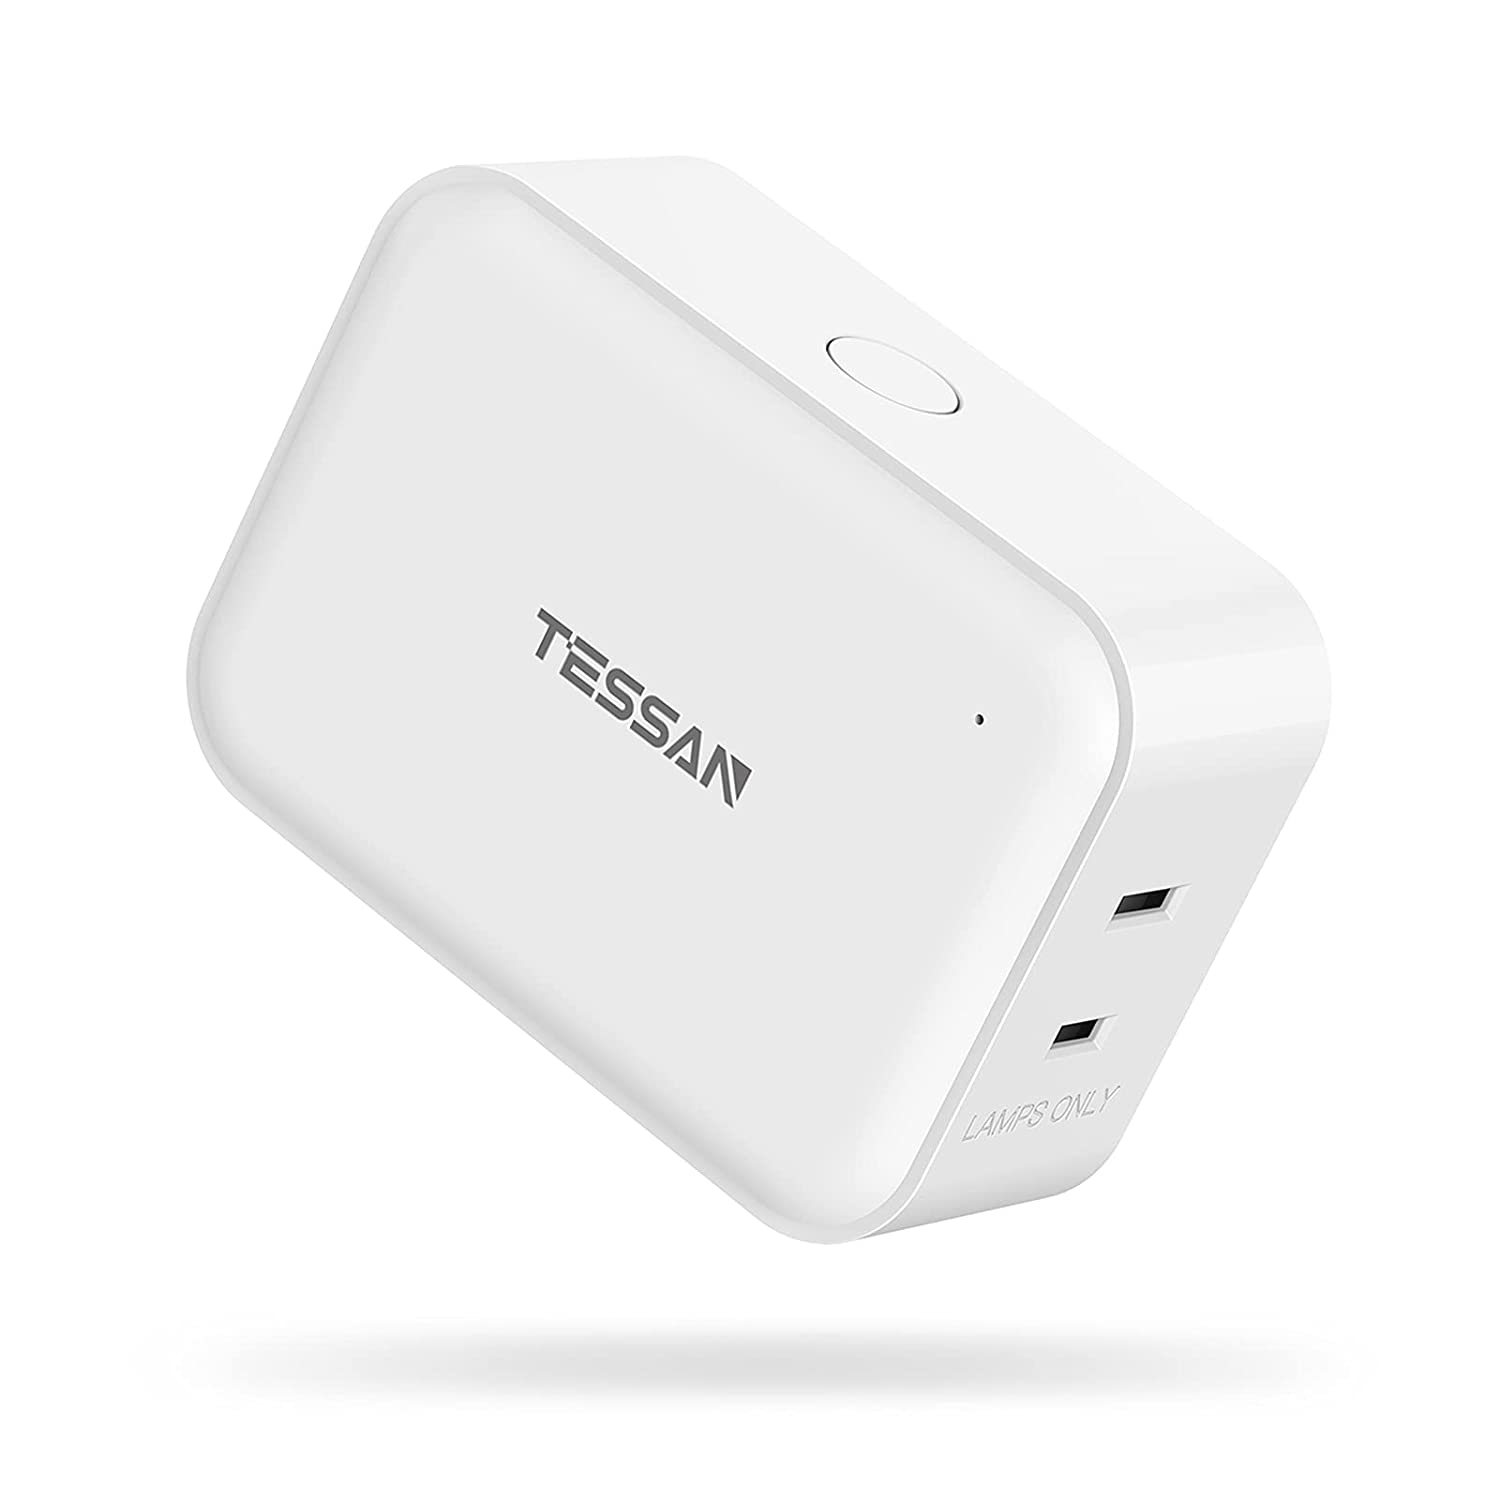 Smart Dimmer Plug for Lamp and String Lights, TESSAN Dimmable WiFi Plug Compatible with Alexa, Google Home, with Voice Control, Schedule Timer, Remote Control, 2 Outlets and Max Power 300W